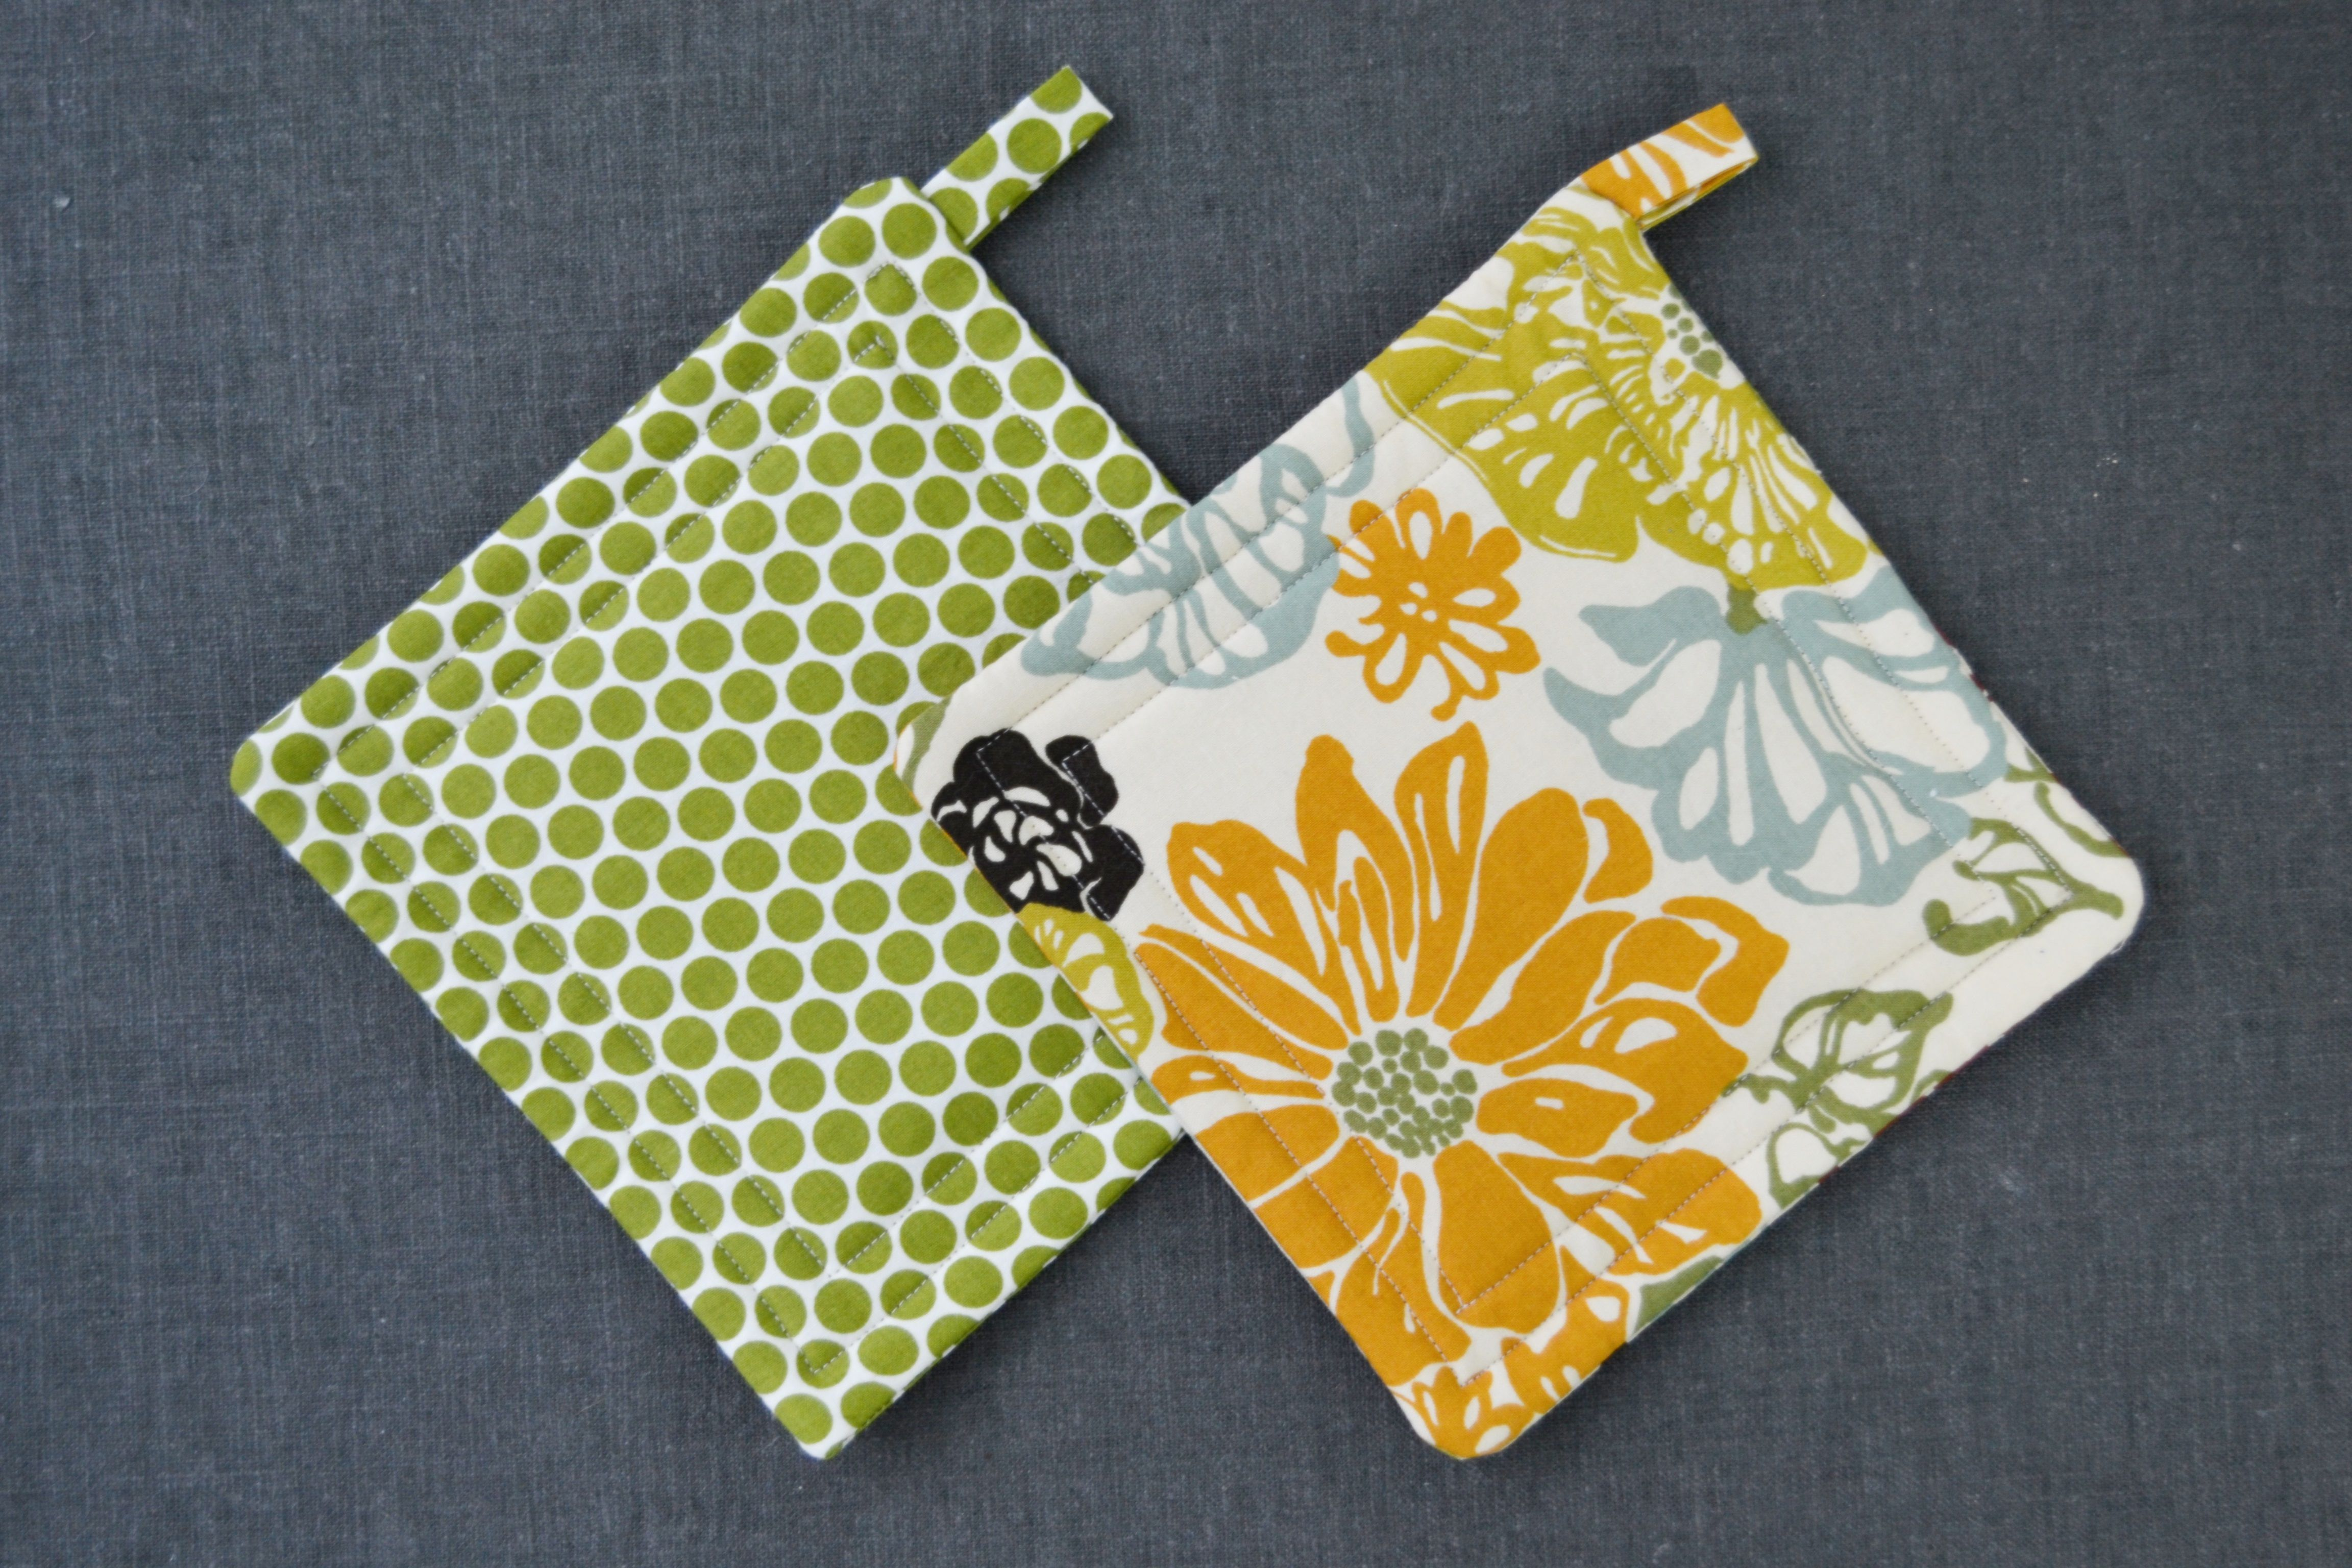 Two colorful pot holders